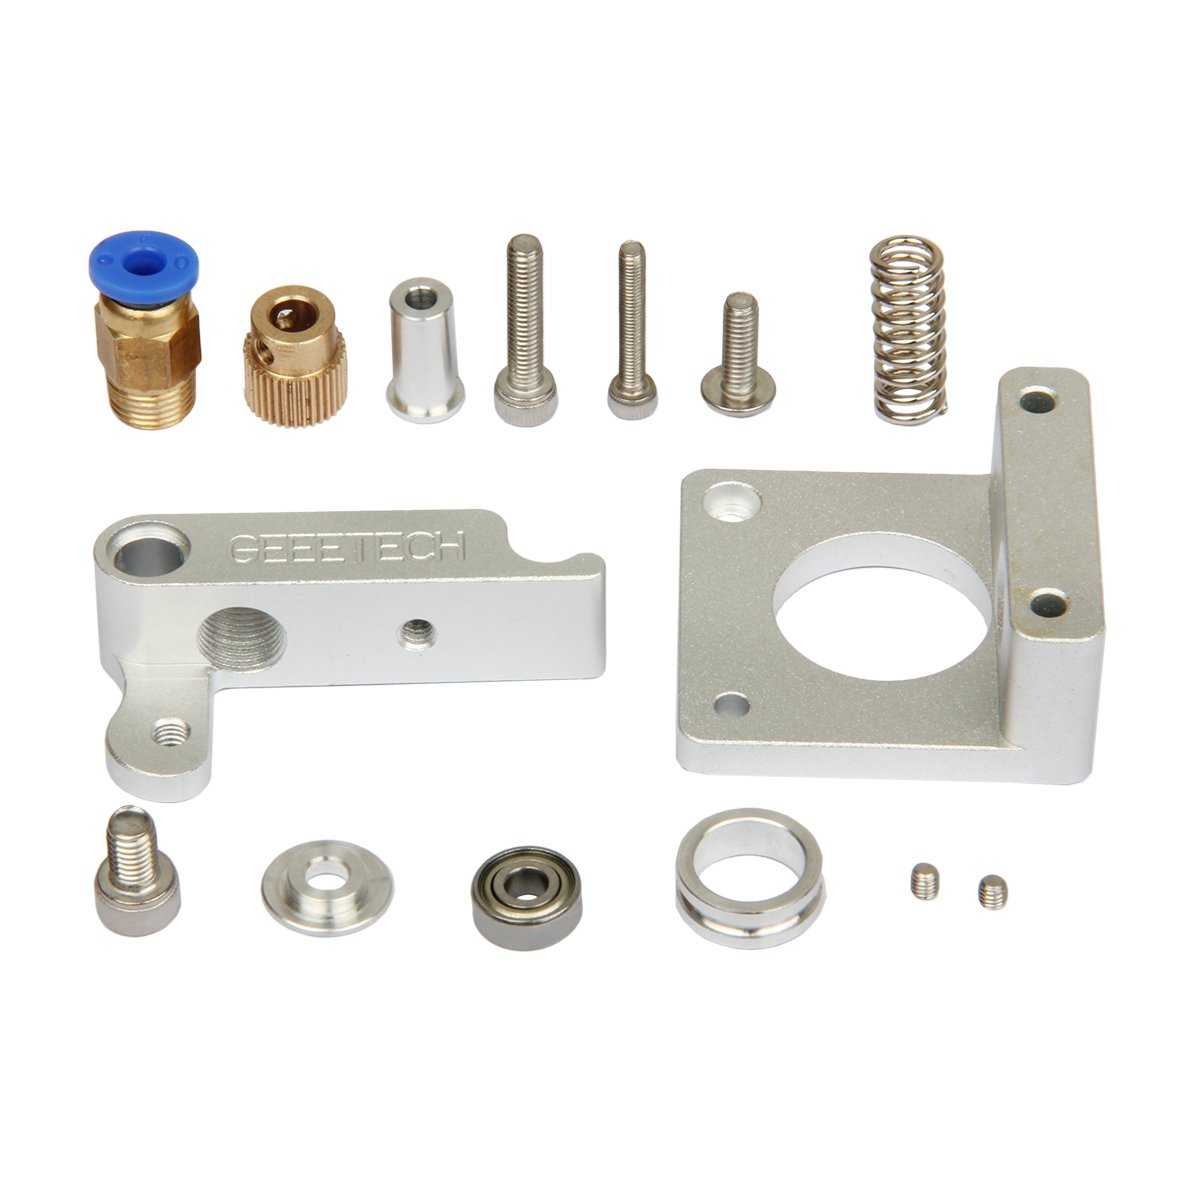 Extruder Aluminum feeder kit with adjustable bolt, Used for 1.75mm filament of 3D printer MK8 bowden extruder frame GEEETECH